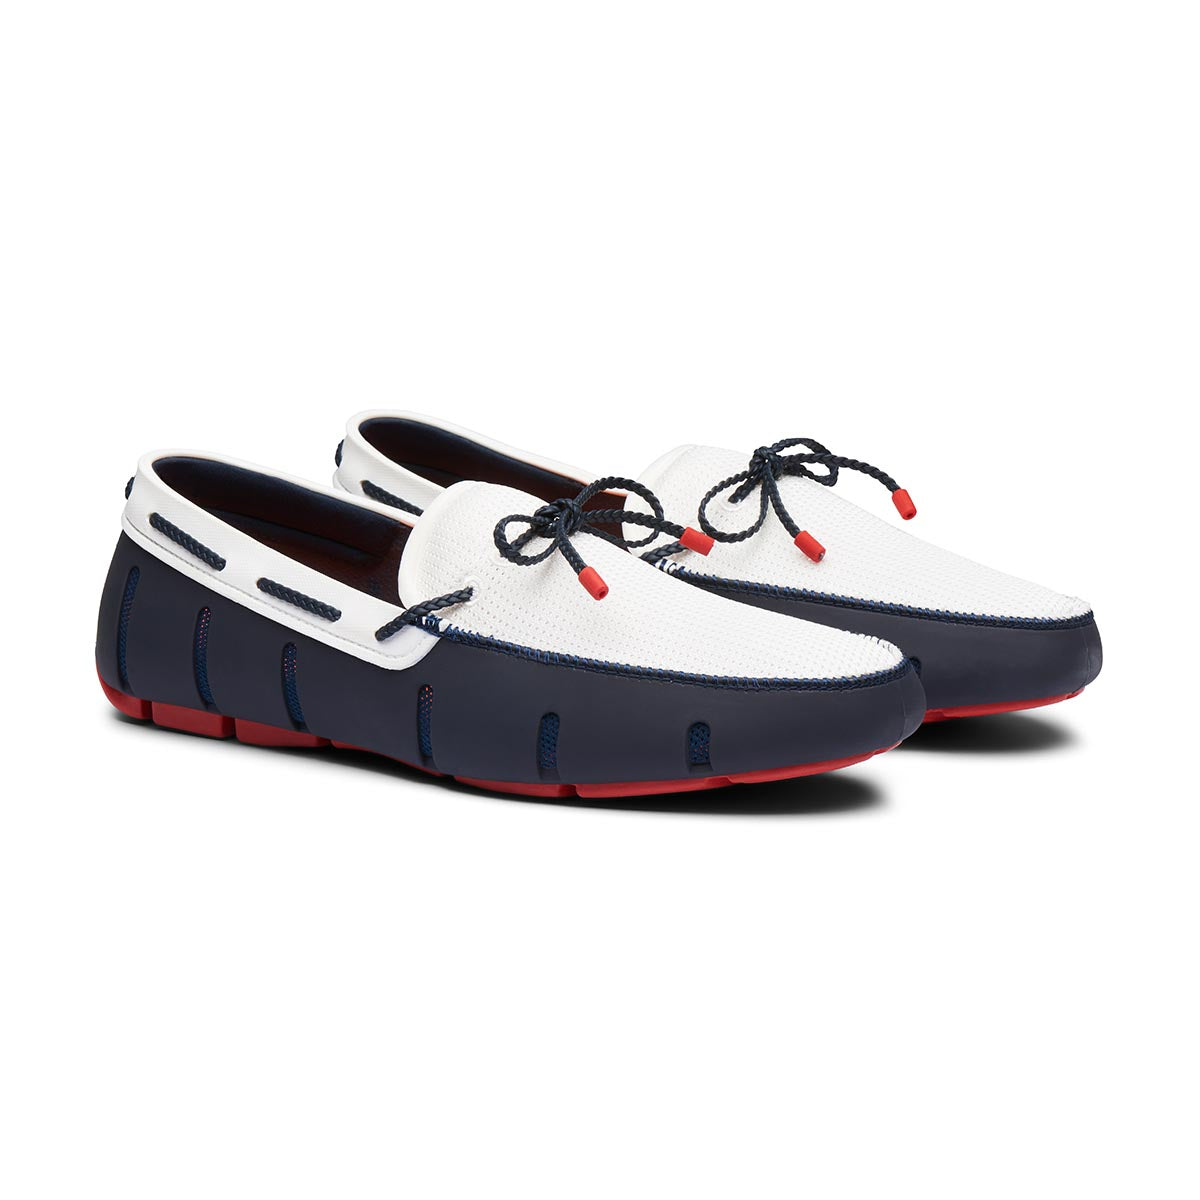 Braided Lace Loafer - background::white,variant::Navy/Red/White